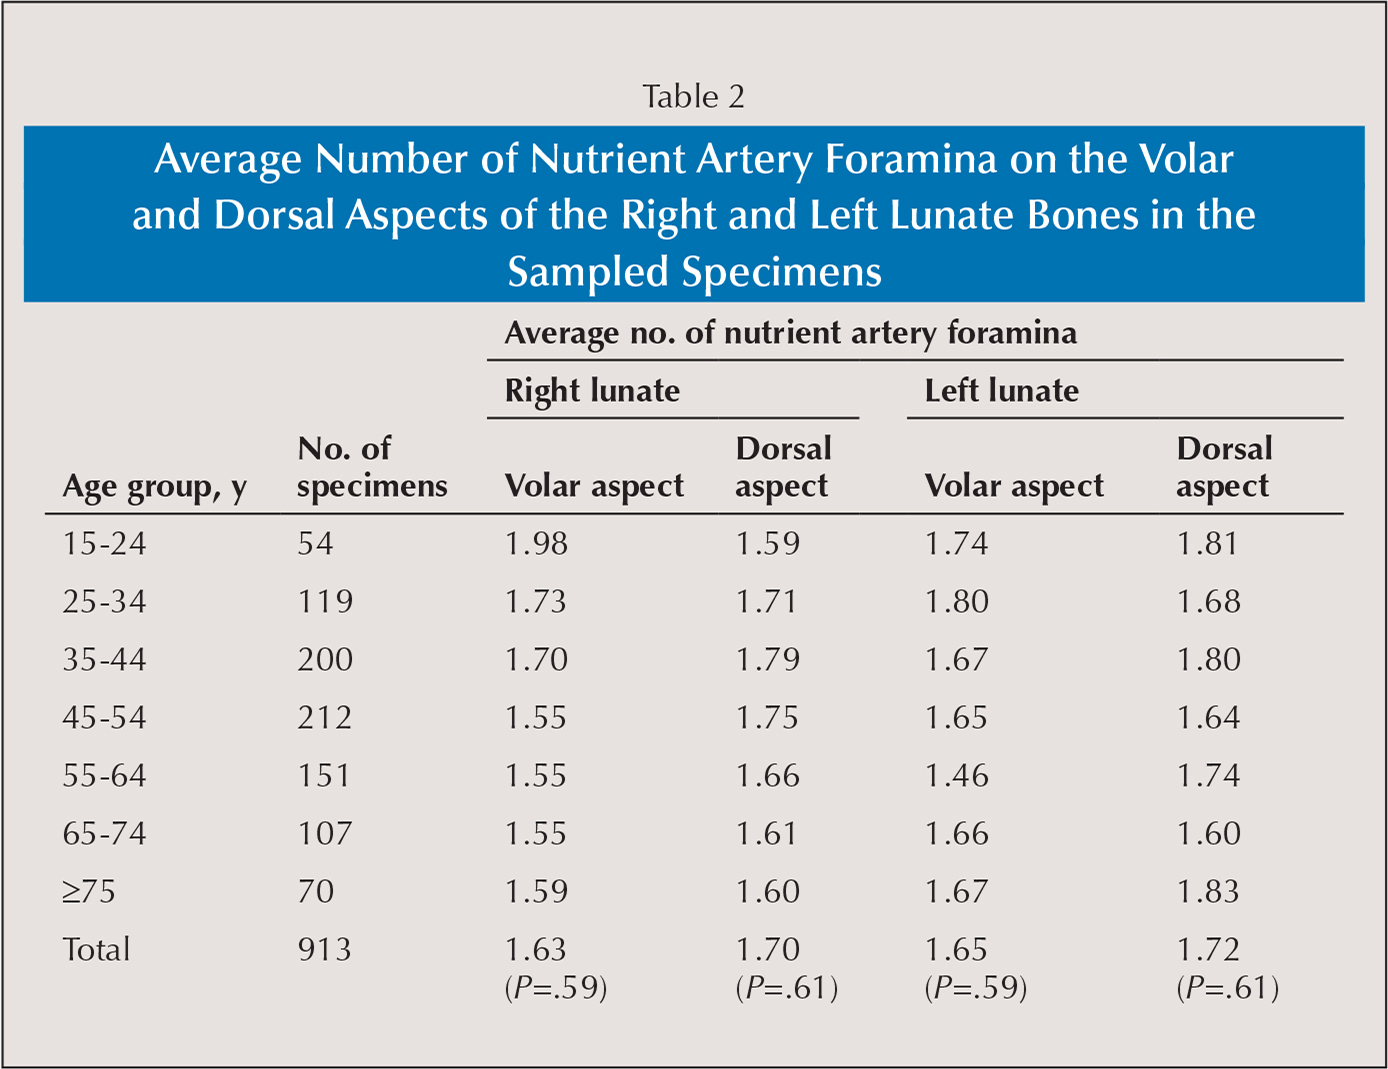 Average Number of Nutrient Artery Foramina on the Volar and Dorsal Aspects of the Right and Left Lunate Bones in the Sampled Specimens